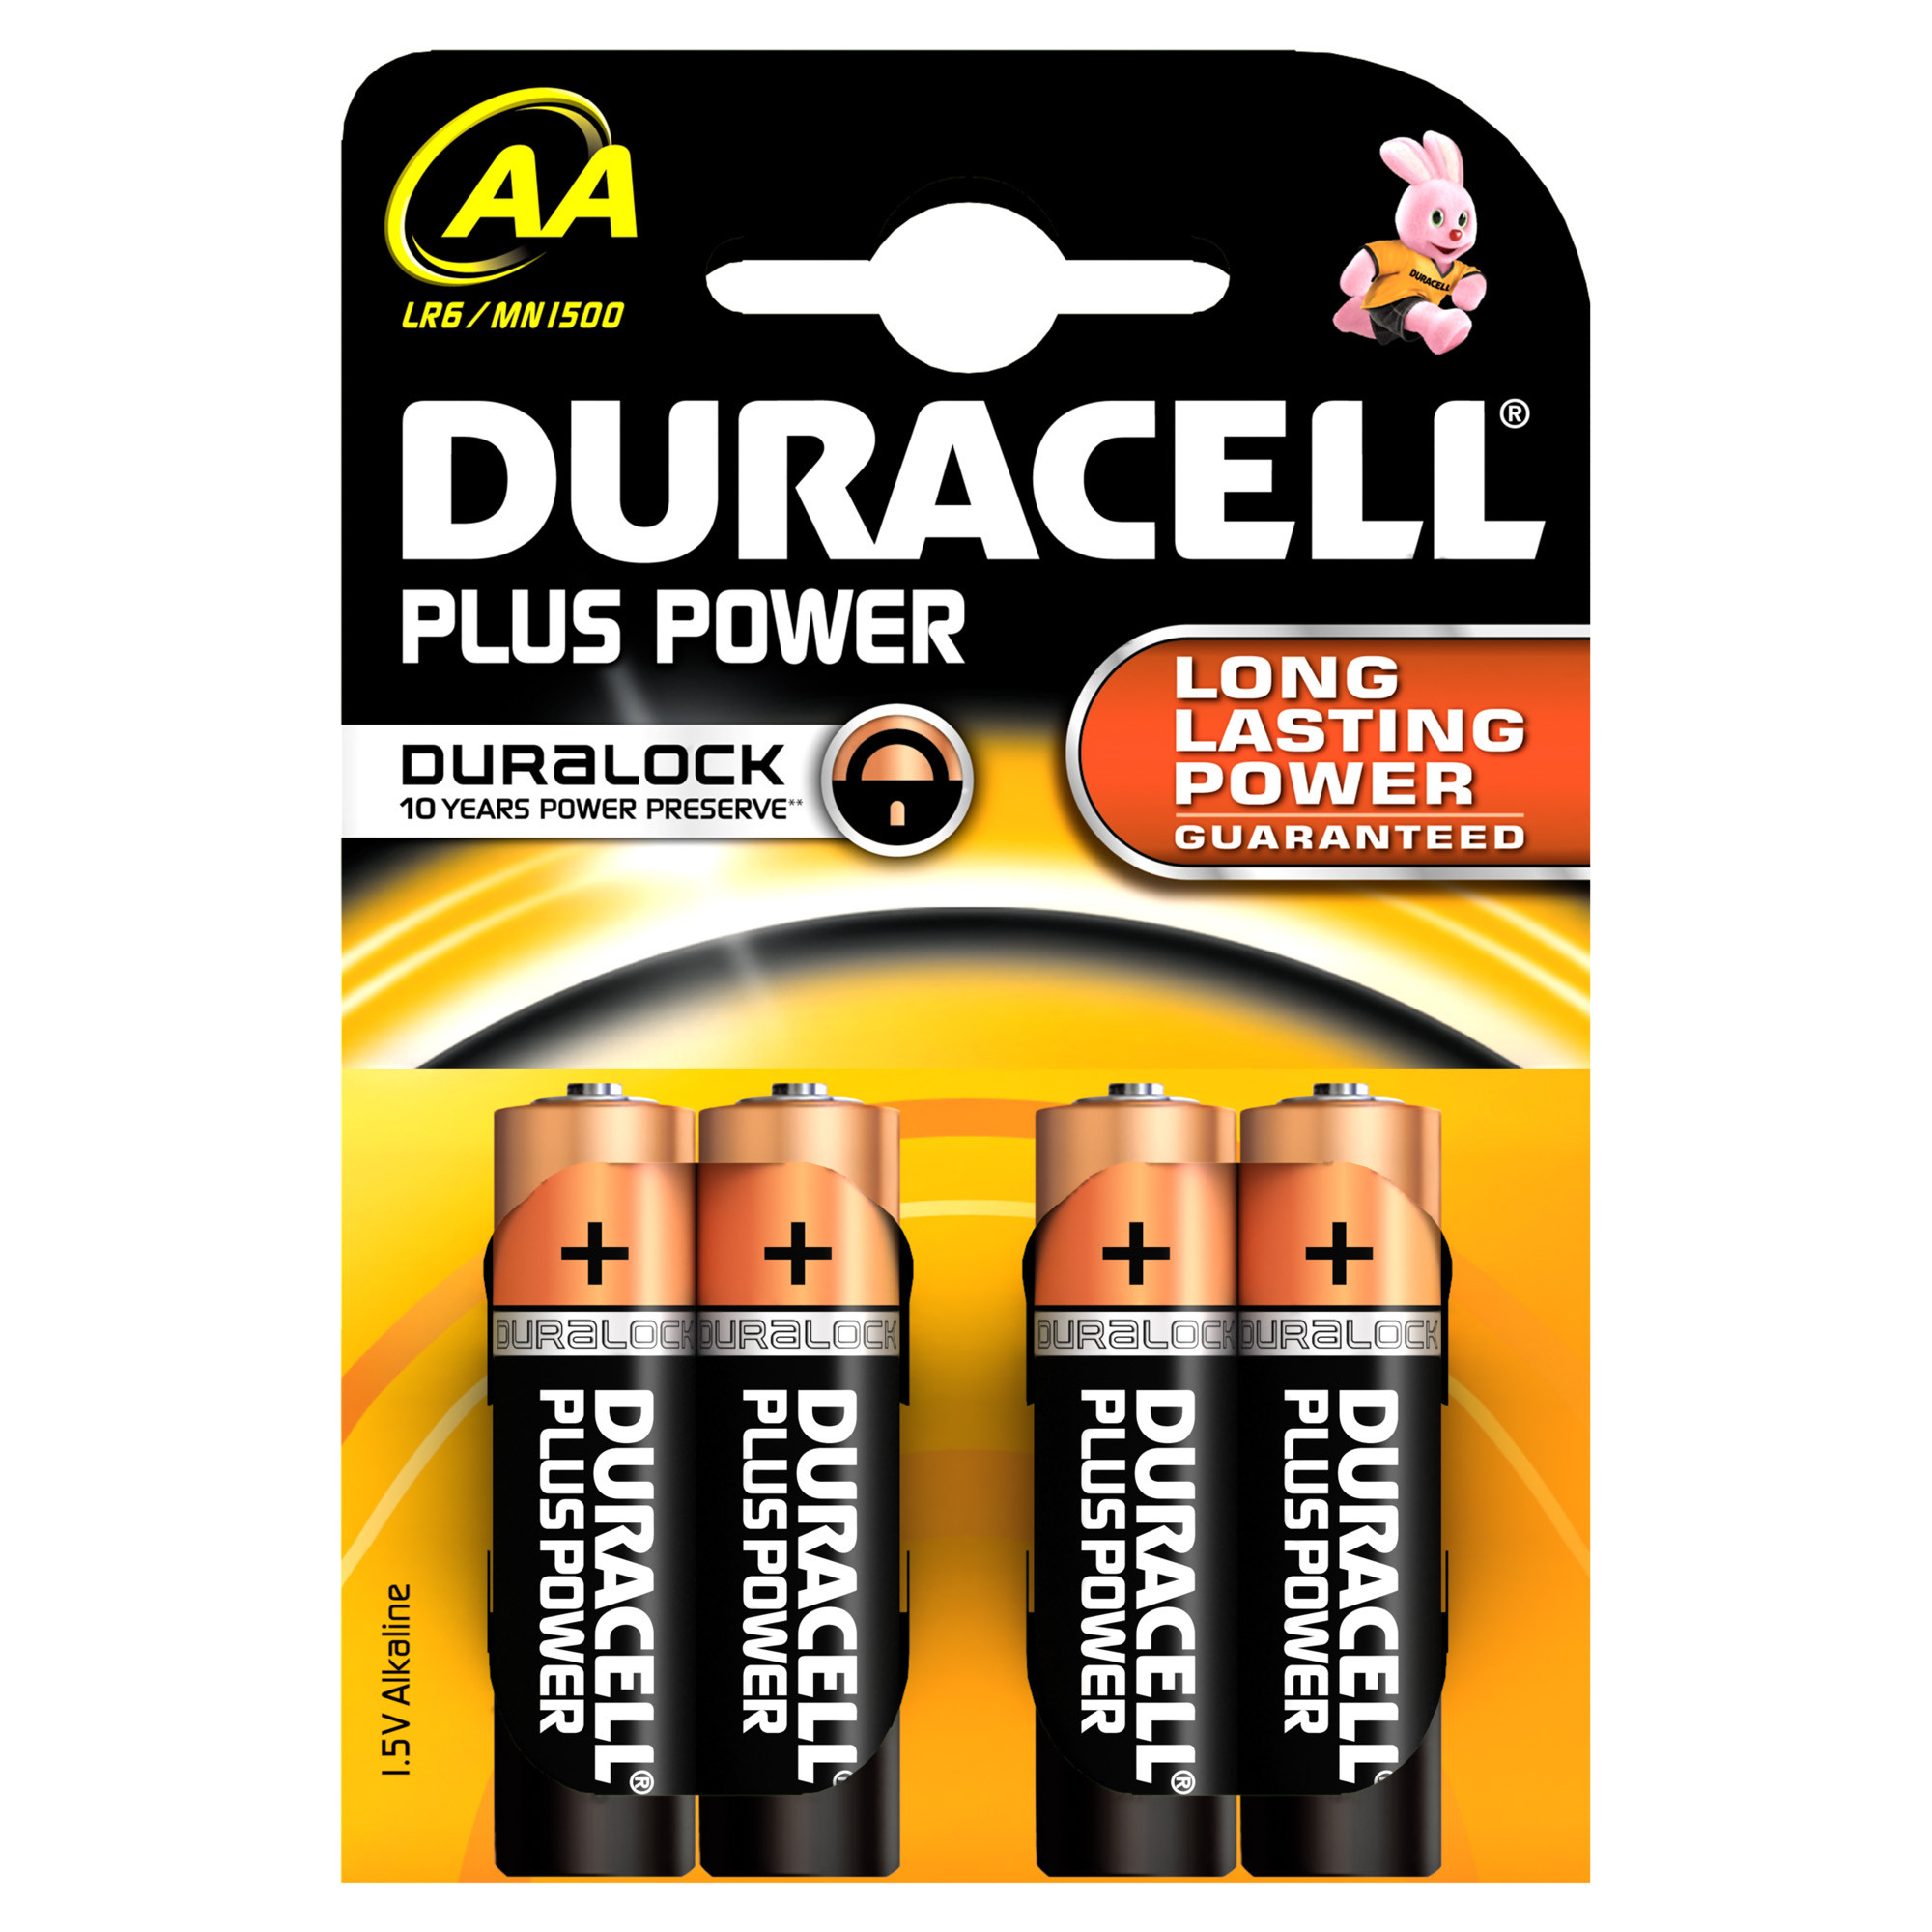 Duracell Plus Power AA - 4 batterie LR6 MN1500